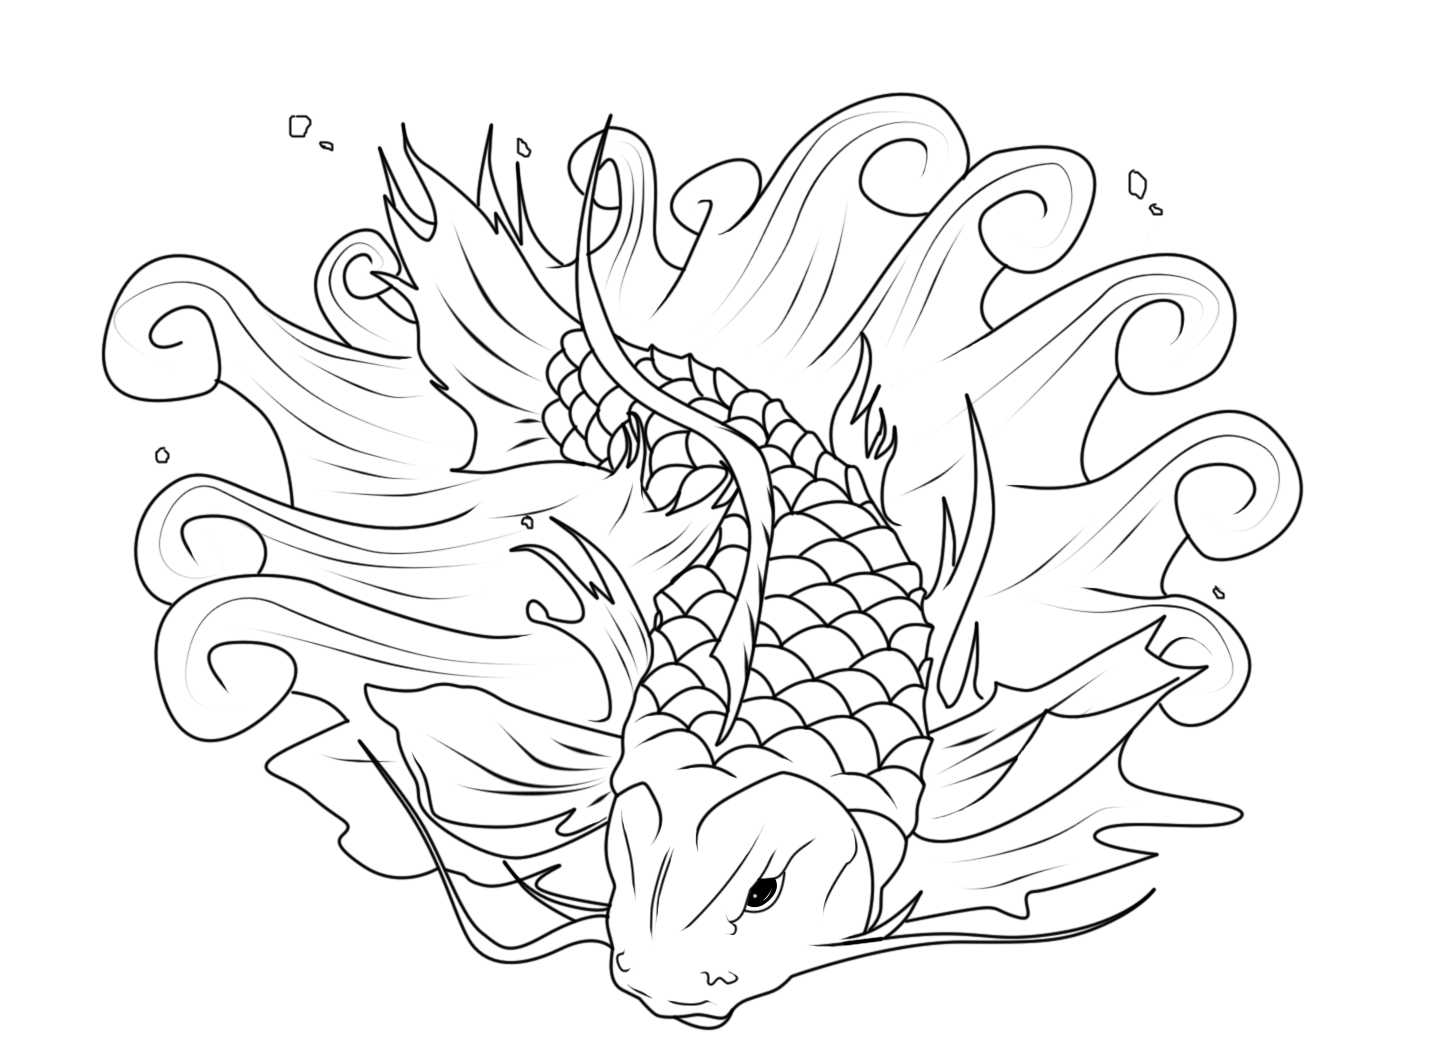 Koi fish coloring pages